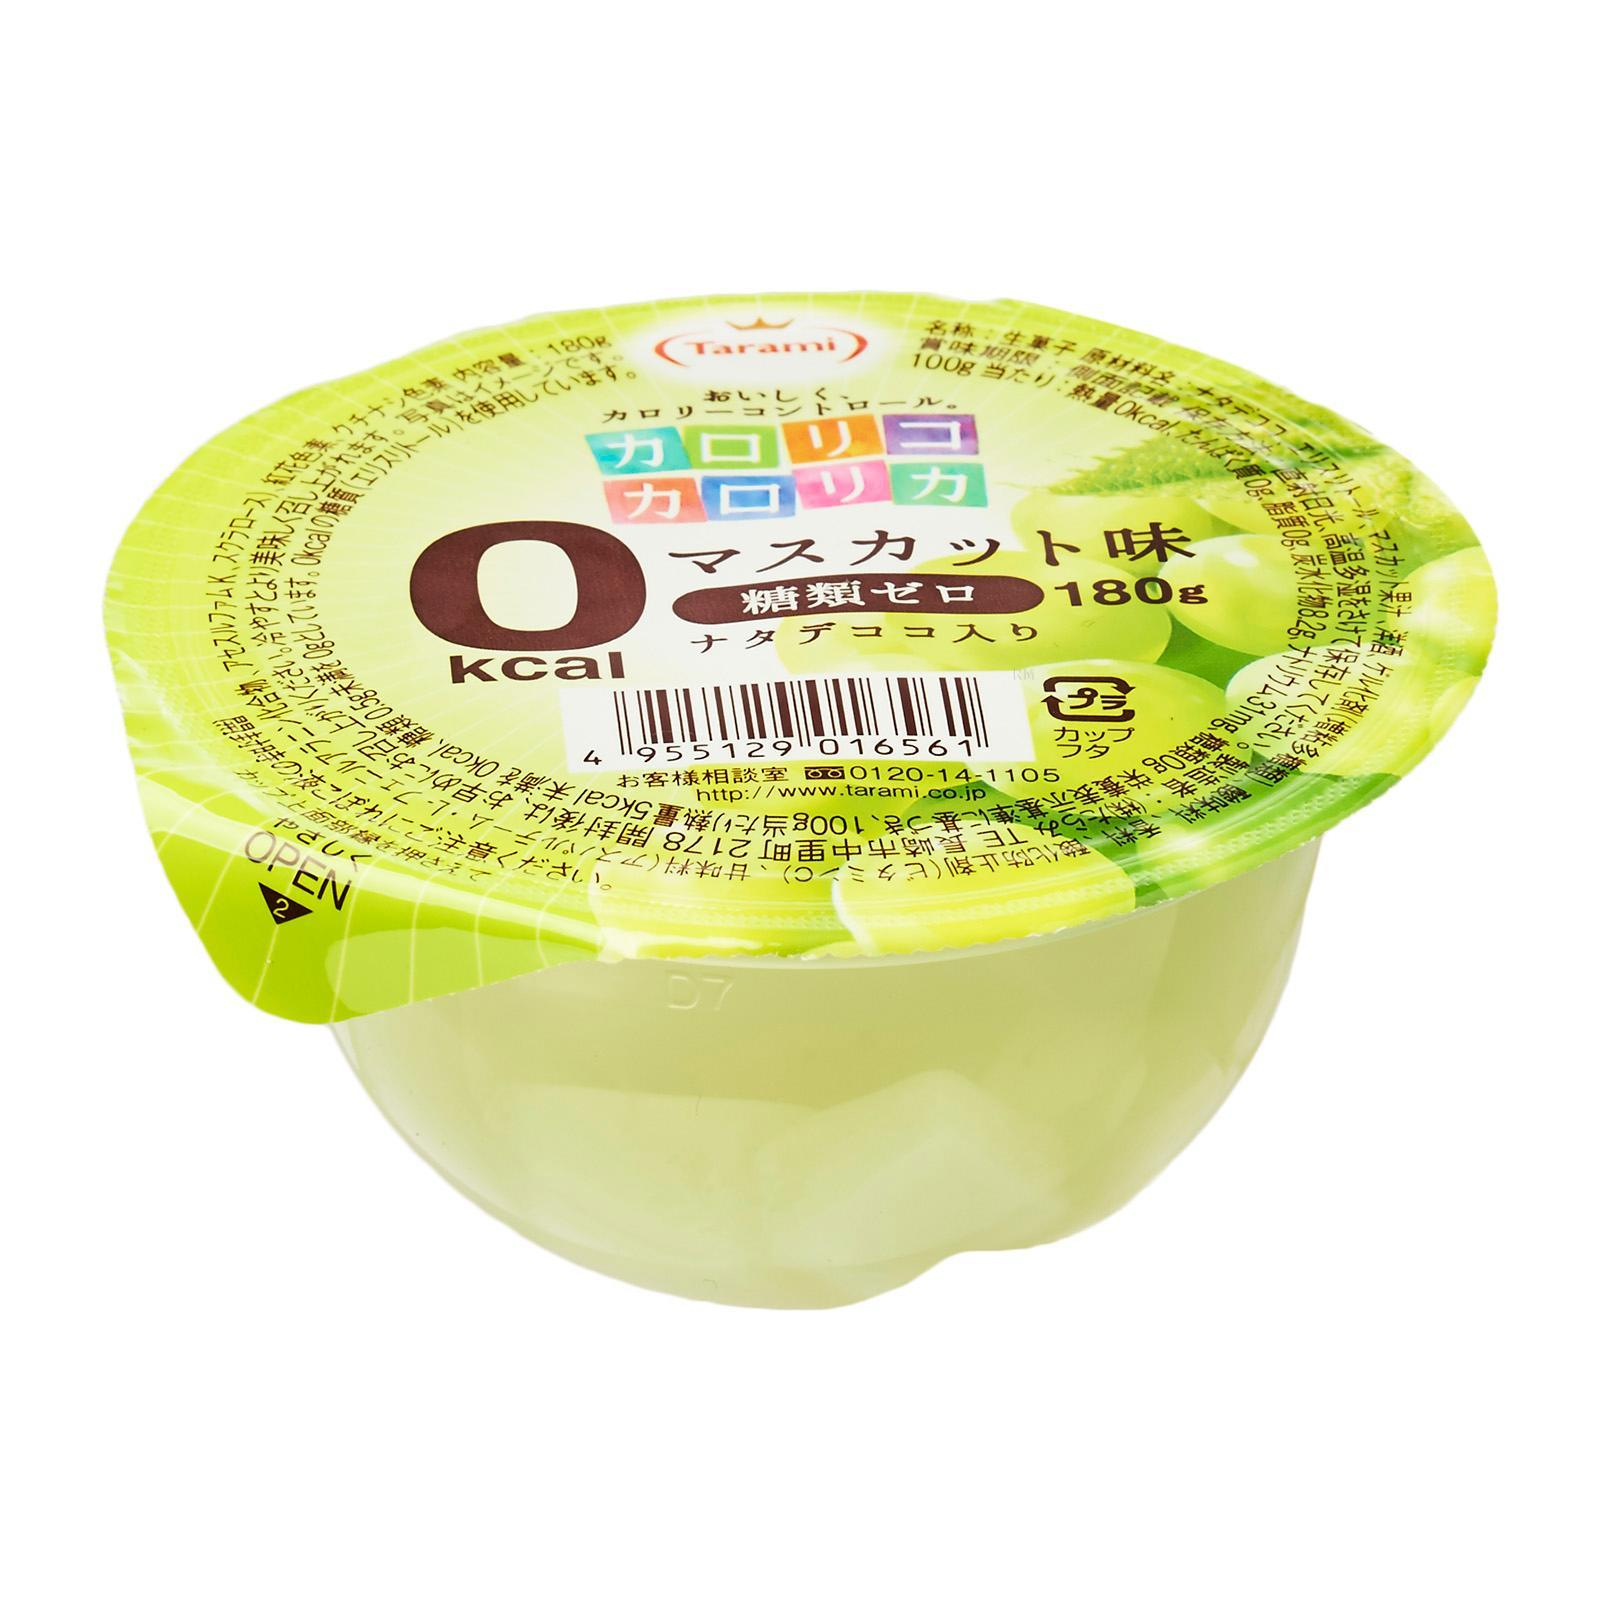 Tarami 0 Kcal Series Muscat Grapes Jelly By Redmart.